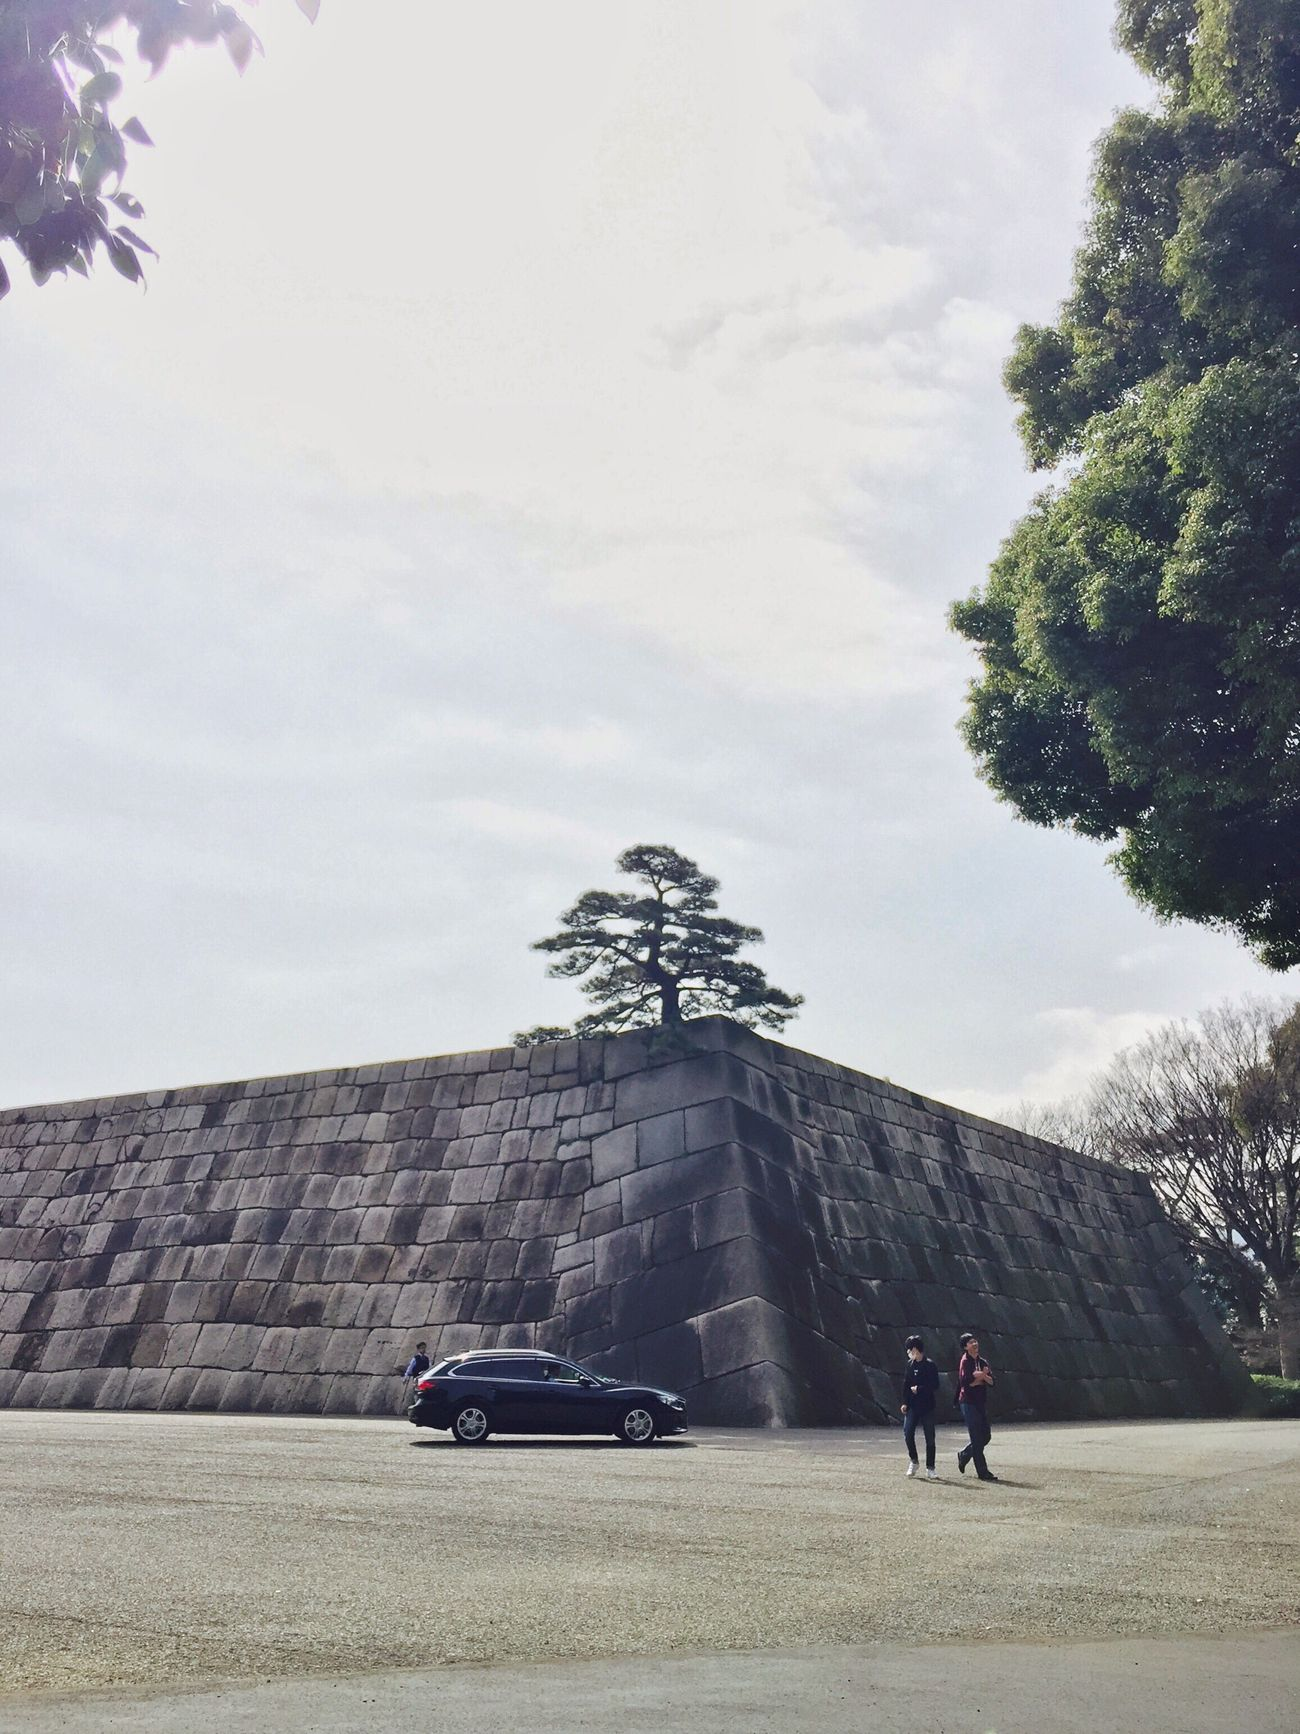 Atenza in Palace/皇居内を走るアテンザ Palace Atenza Mazda Car Castle Hanging Out Enjoying Life Walking Around IPhoneography